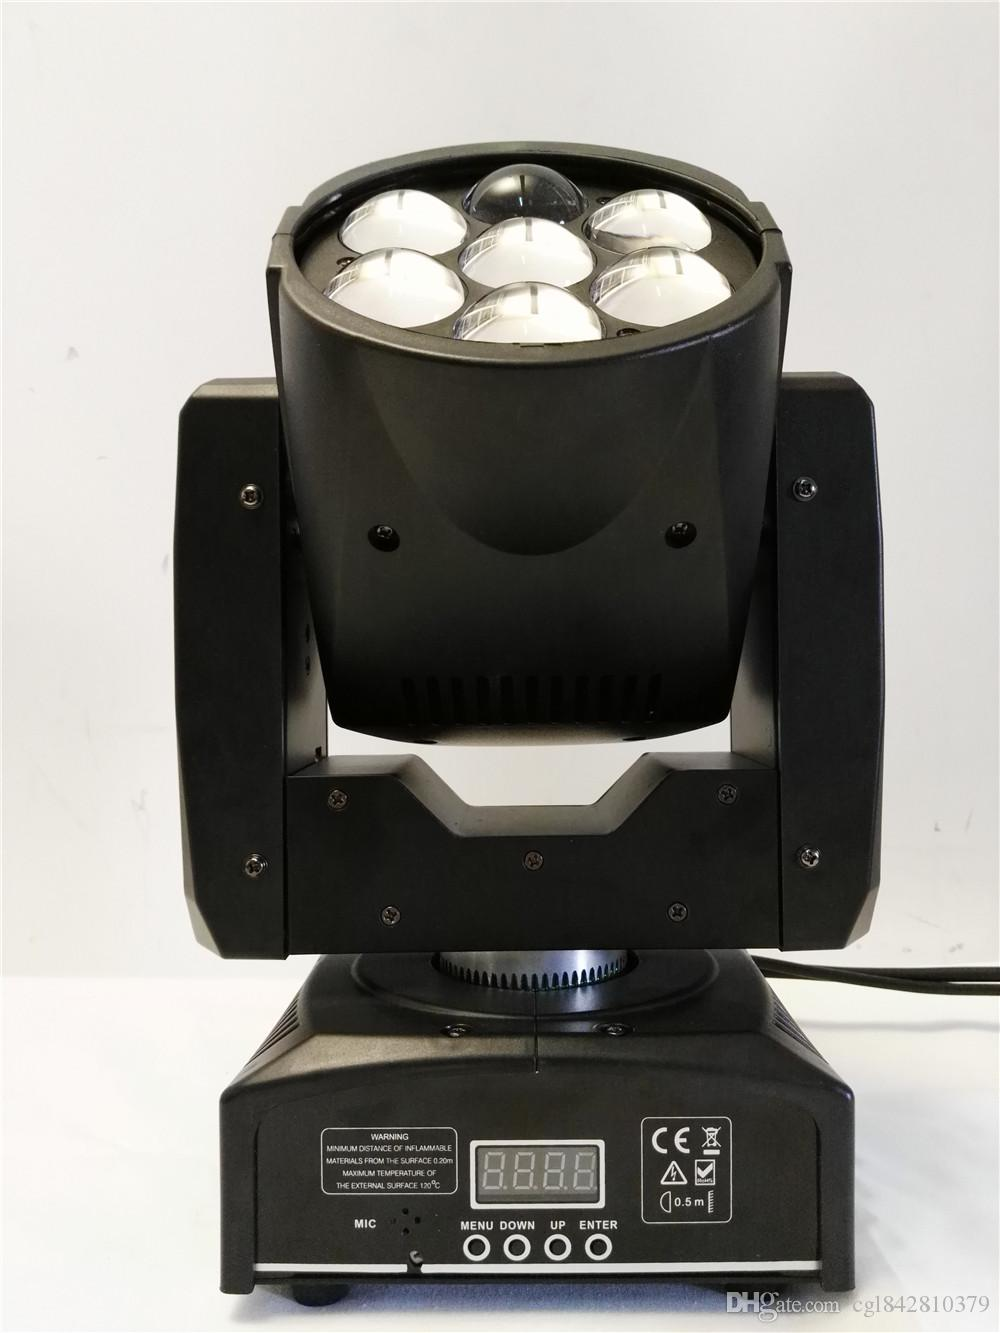 Zoom LED 7x12w RGBW 4in1 Luce a testa mobile DMX512 Wash Light / Zoom Light DJ professionale / Bar / Party / Show / Stage Light